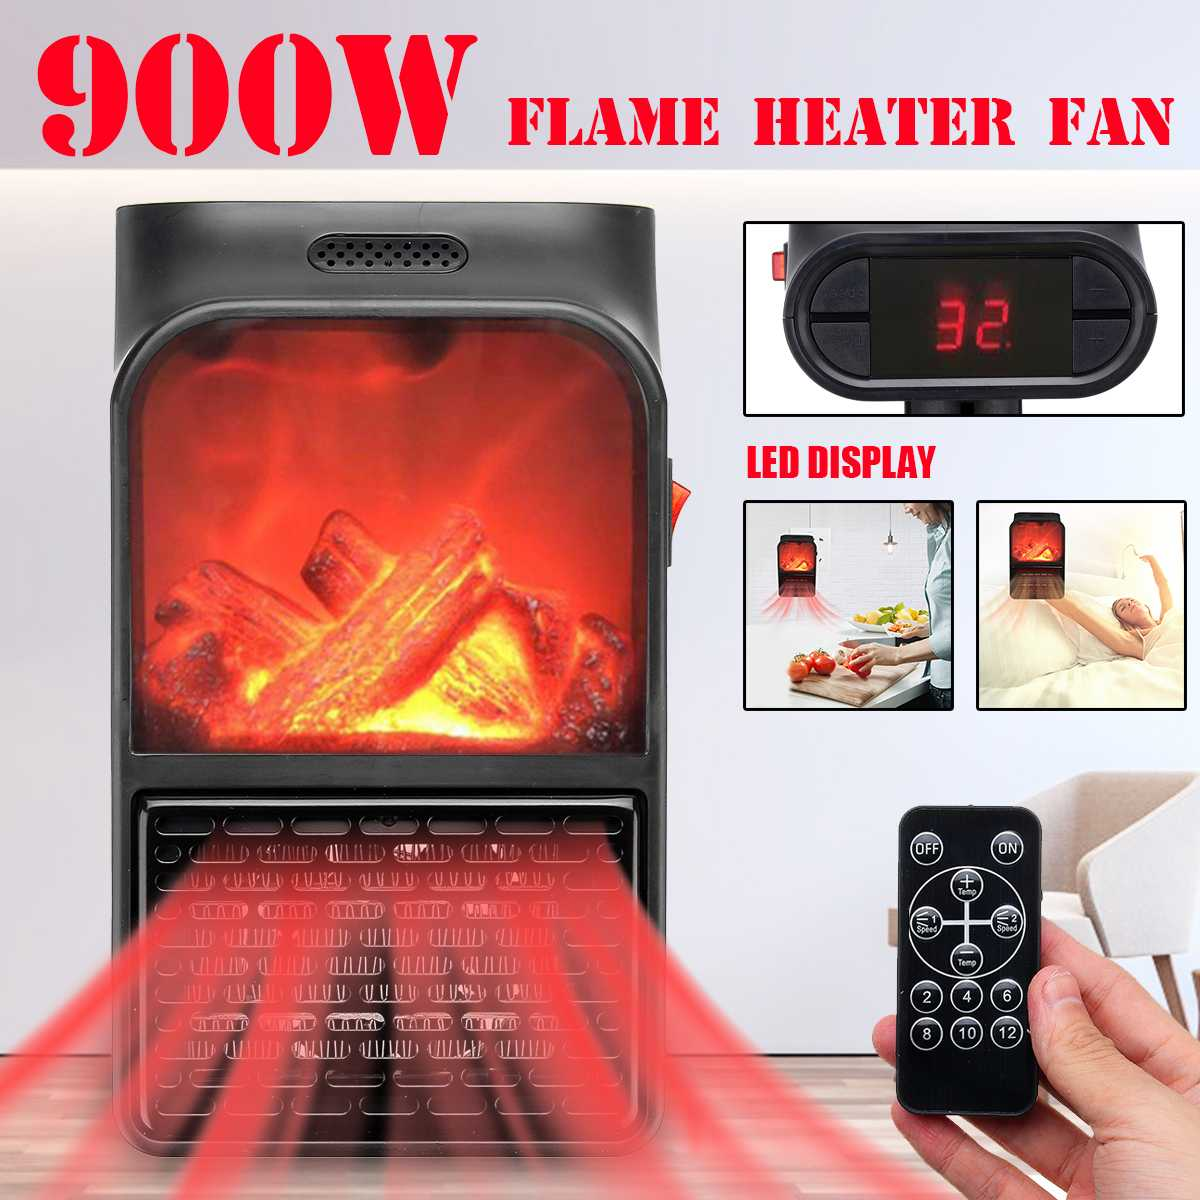 900W Mini Electric Wall outlet Flame Heater EU Plug in Air Warmer PTC Ceramic Heating Stove Radiator Household Wall Handy Fan Electric Heaters     - title=